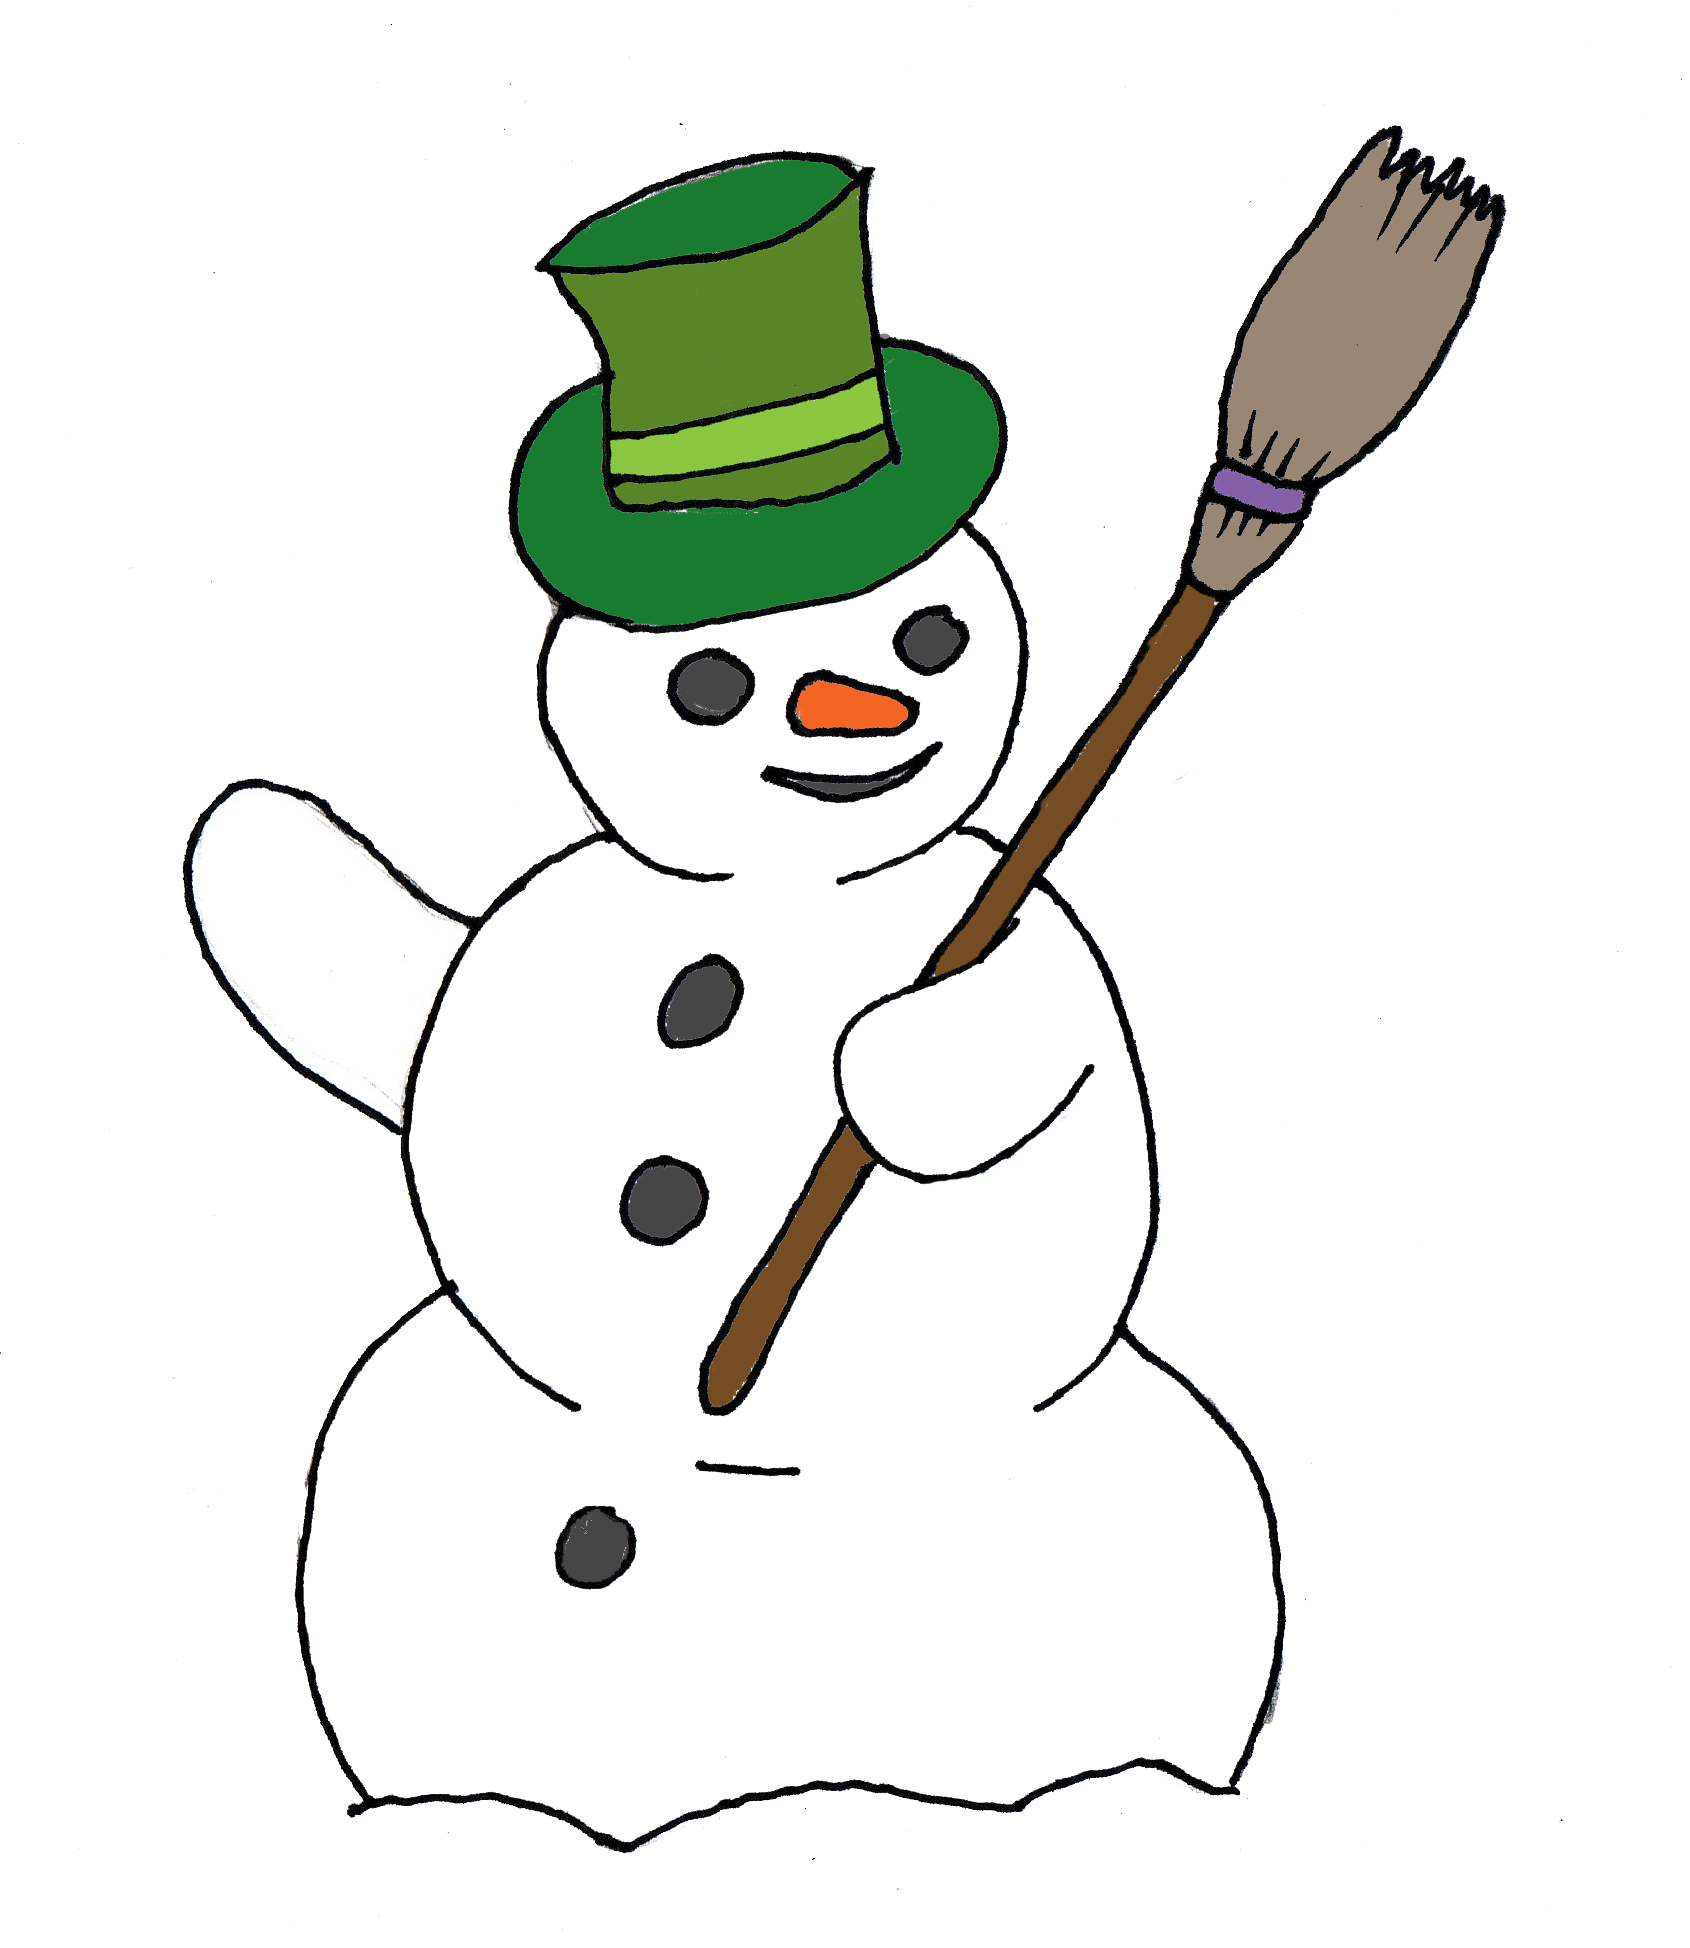 Snowman border clipart free download Free Snowman Clipart Border | Clipart Panda - Free Clipart ... download